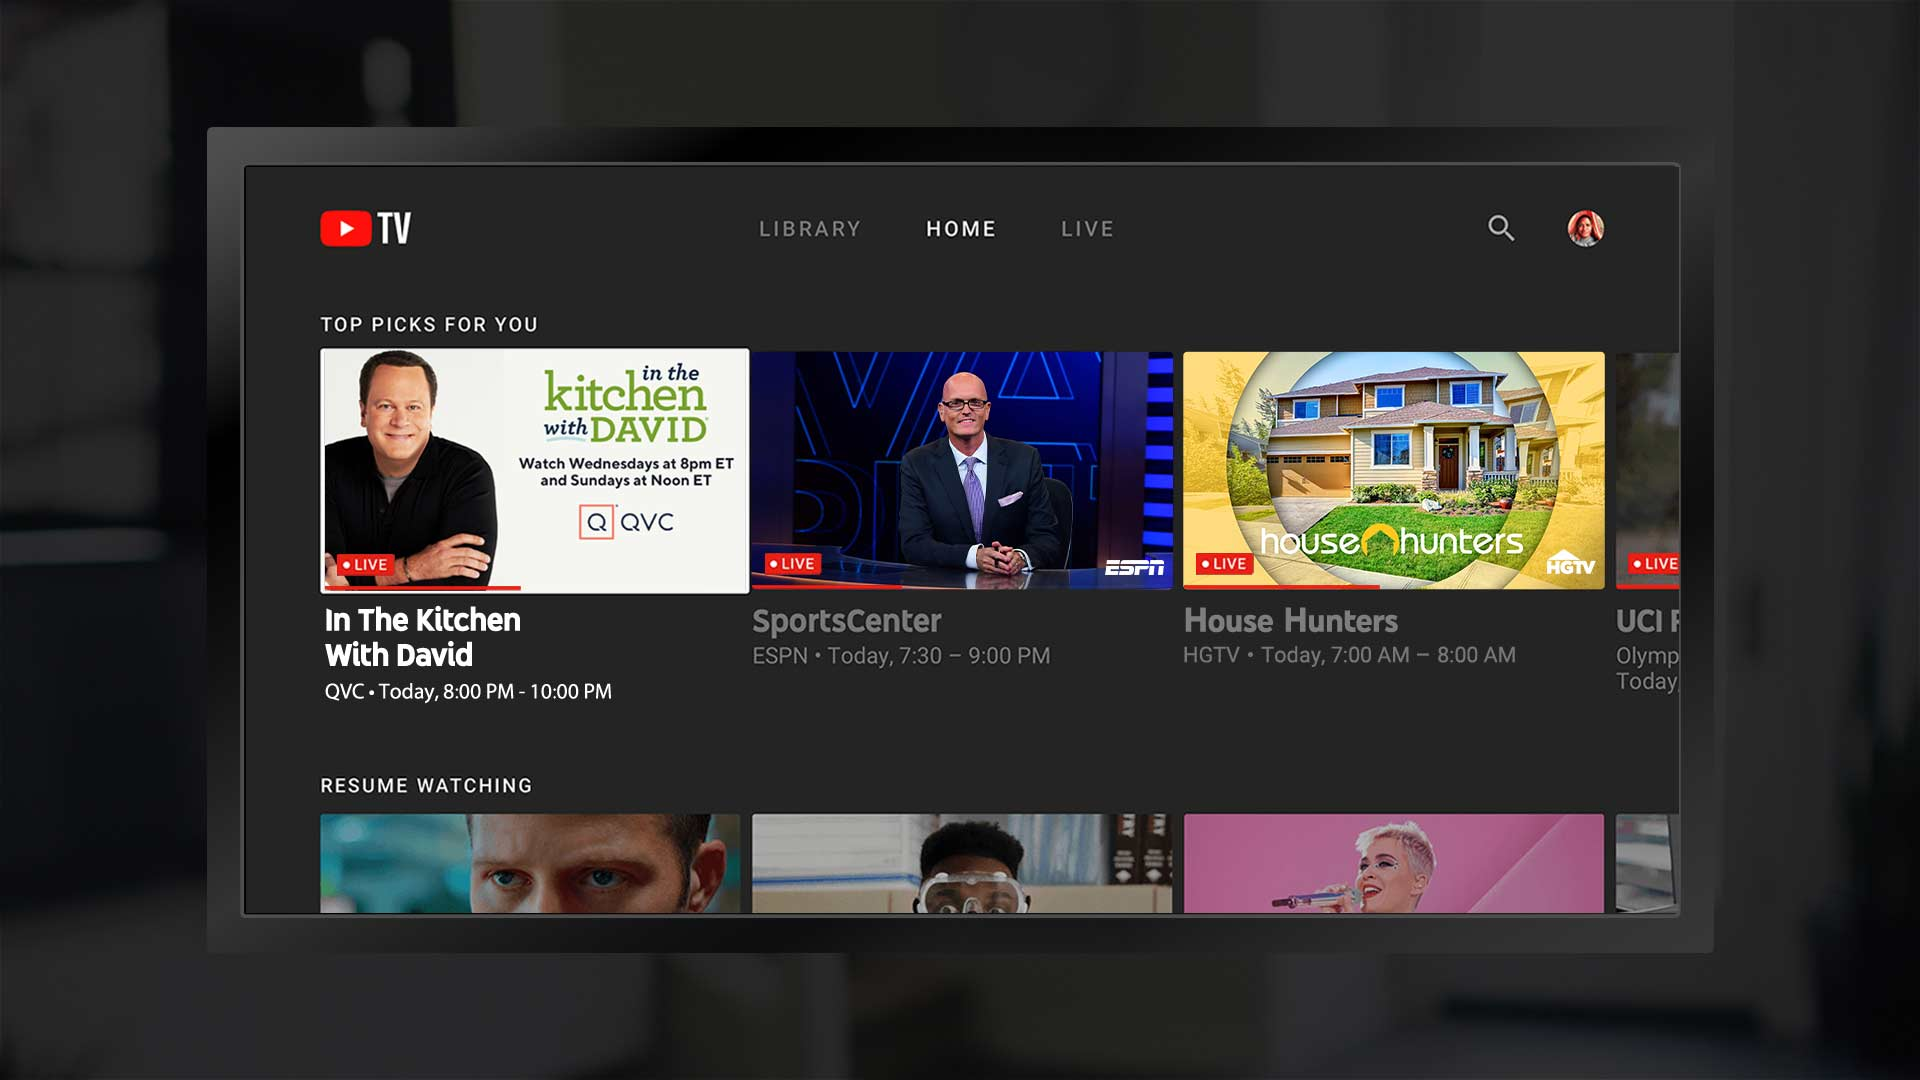 QVC on YouTube-TV.